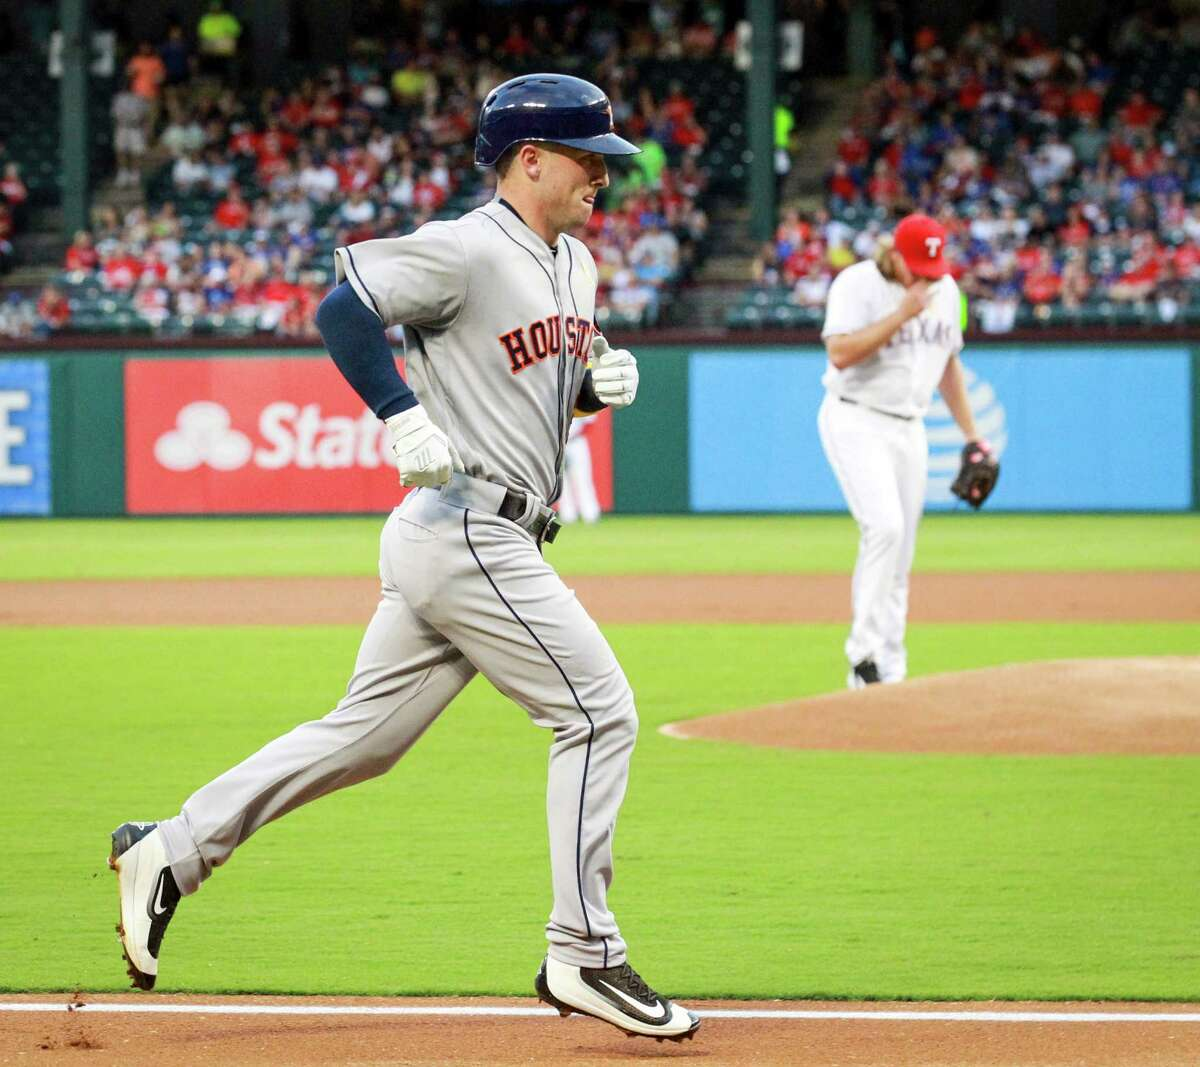 The Houston Astros' Alex Bregman makes his way home after a solo home run in the first inning off of Texas Rangers starting pitcher A.J. Griffin at Globe Life Park in Arlington, Texas, on Friday, Sept. 2, 2016.